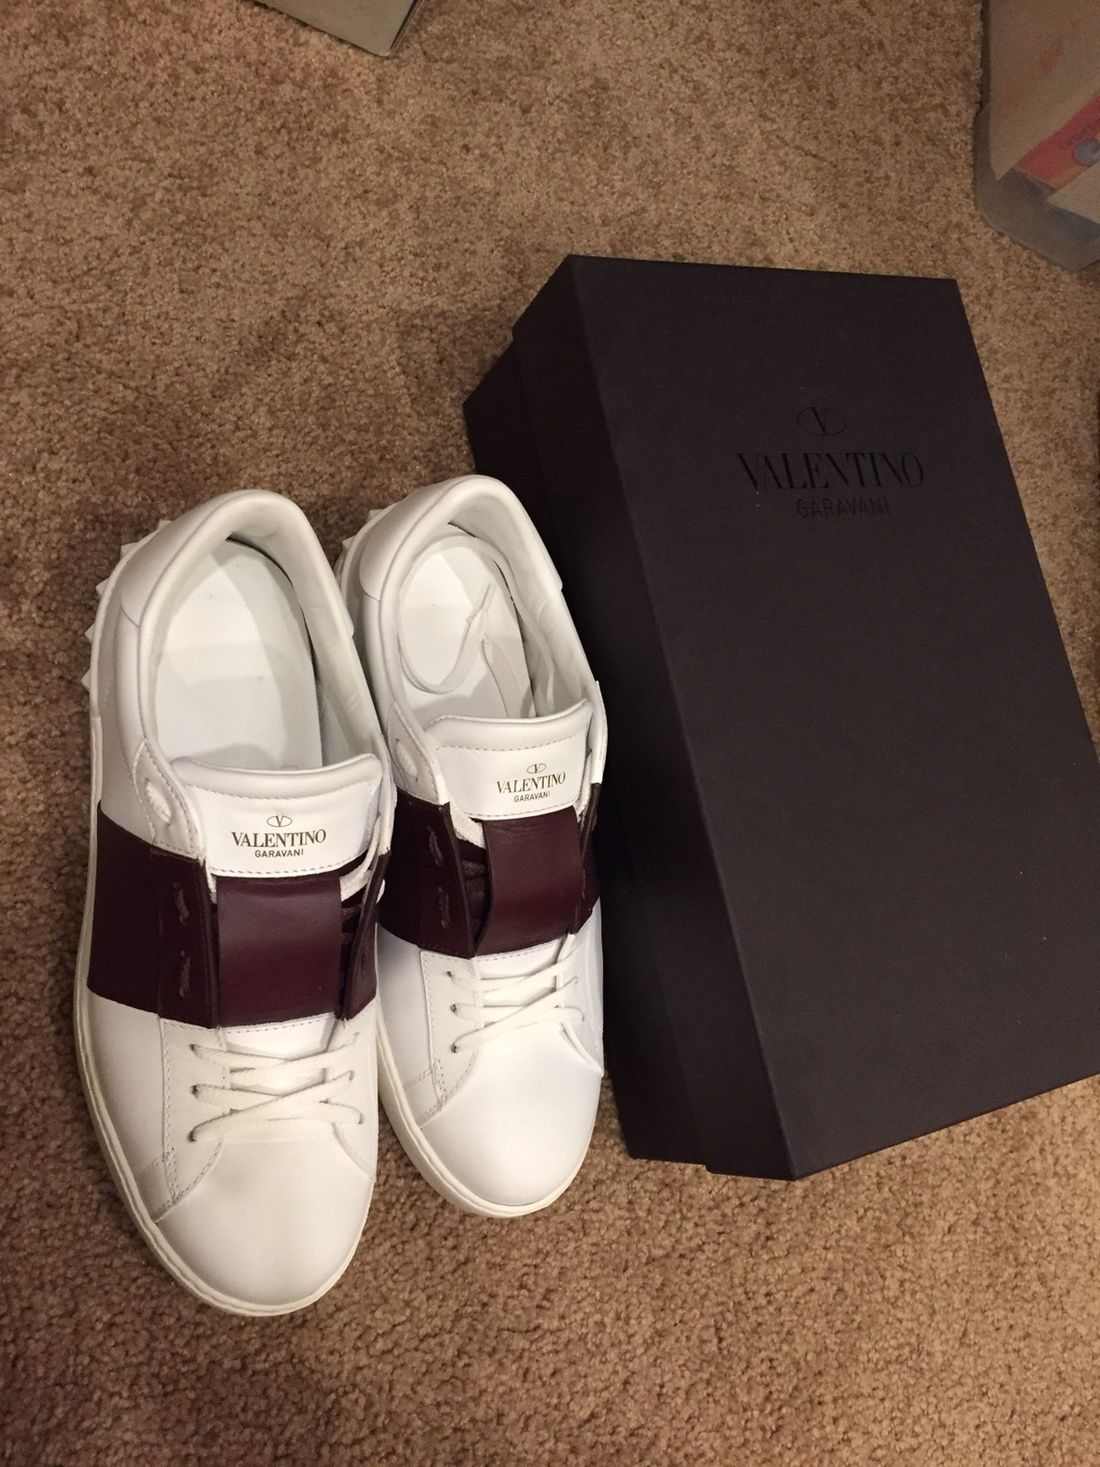 909cd790418 Valentino Valentino Low Top Sneaker Size 9  360 - Grailed